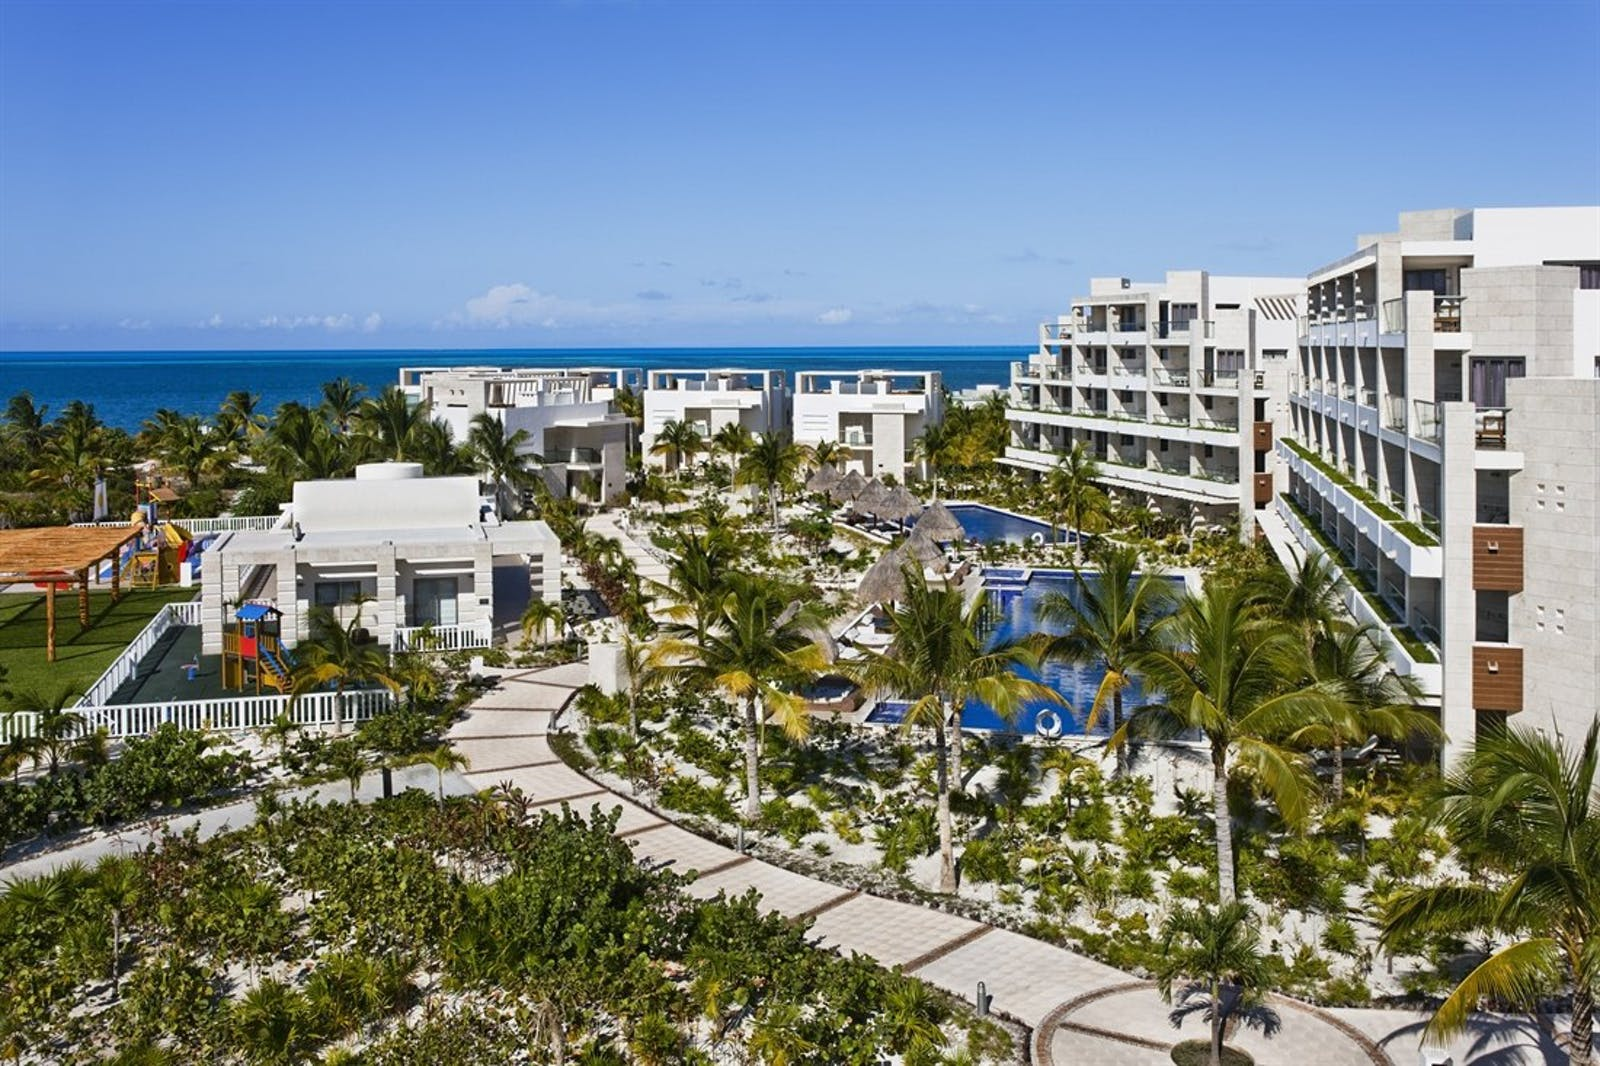 Aerial View at The Beloved Hotel, Riviera Maya, Mexico